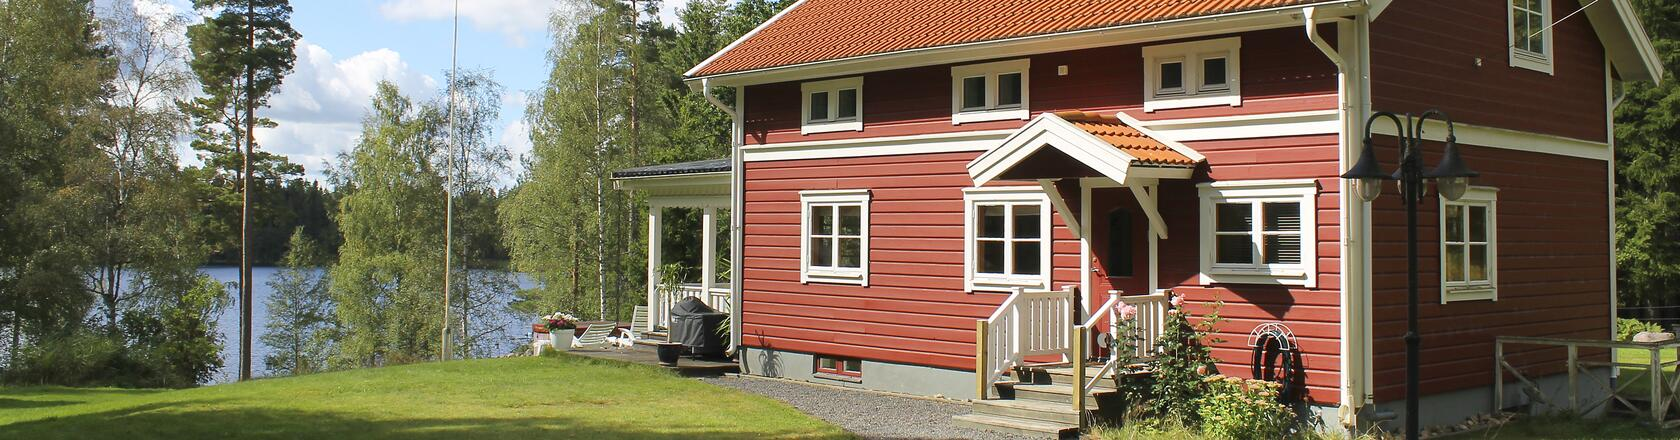 Bunn in Sweden - Rent a holiday home  with DanCenter